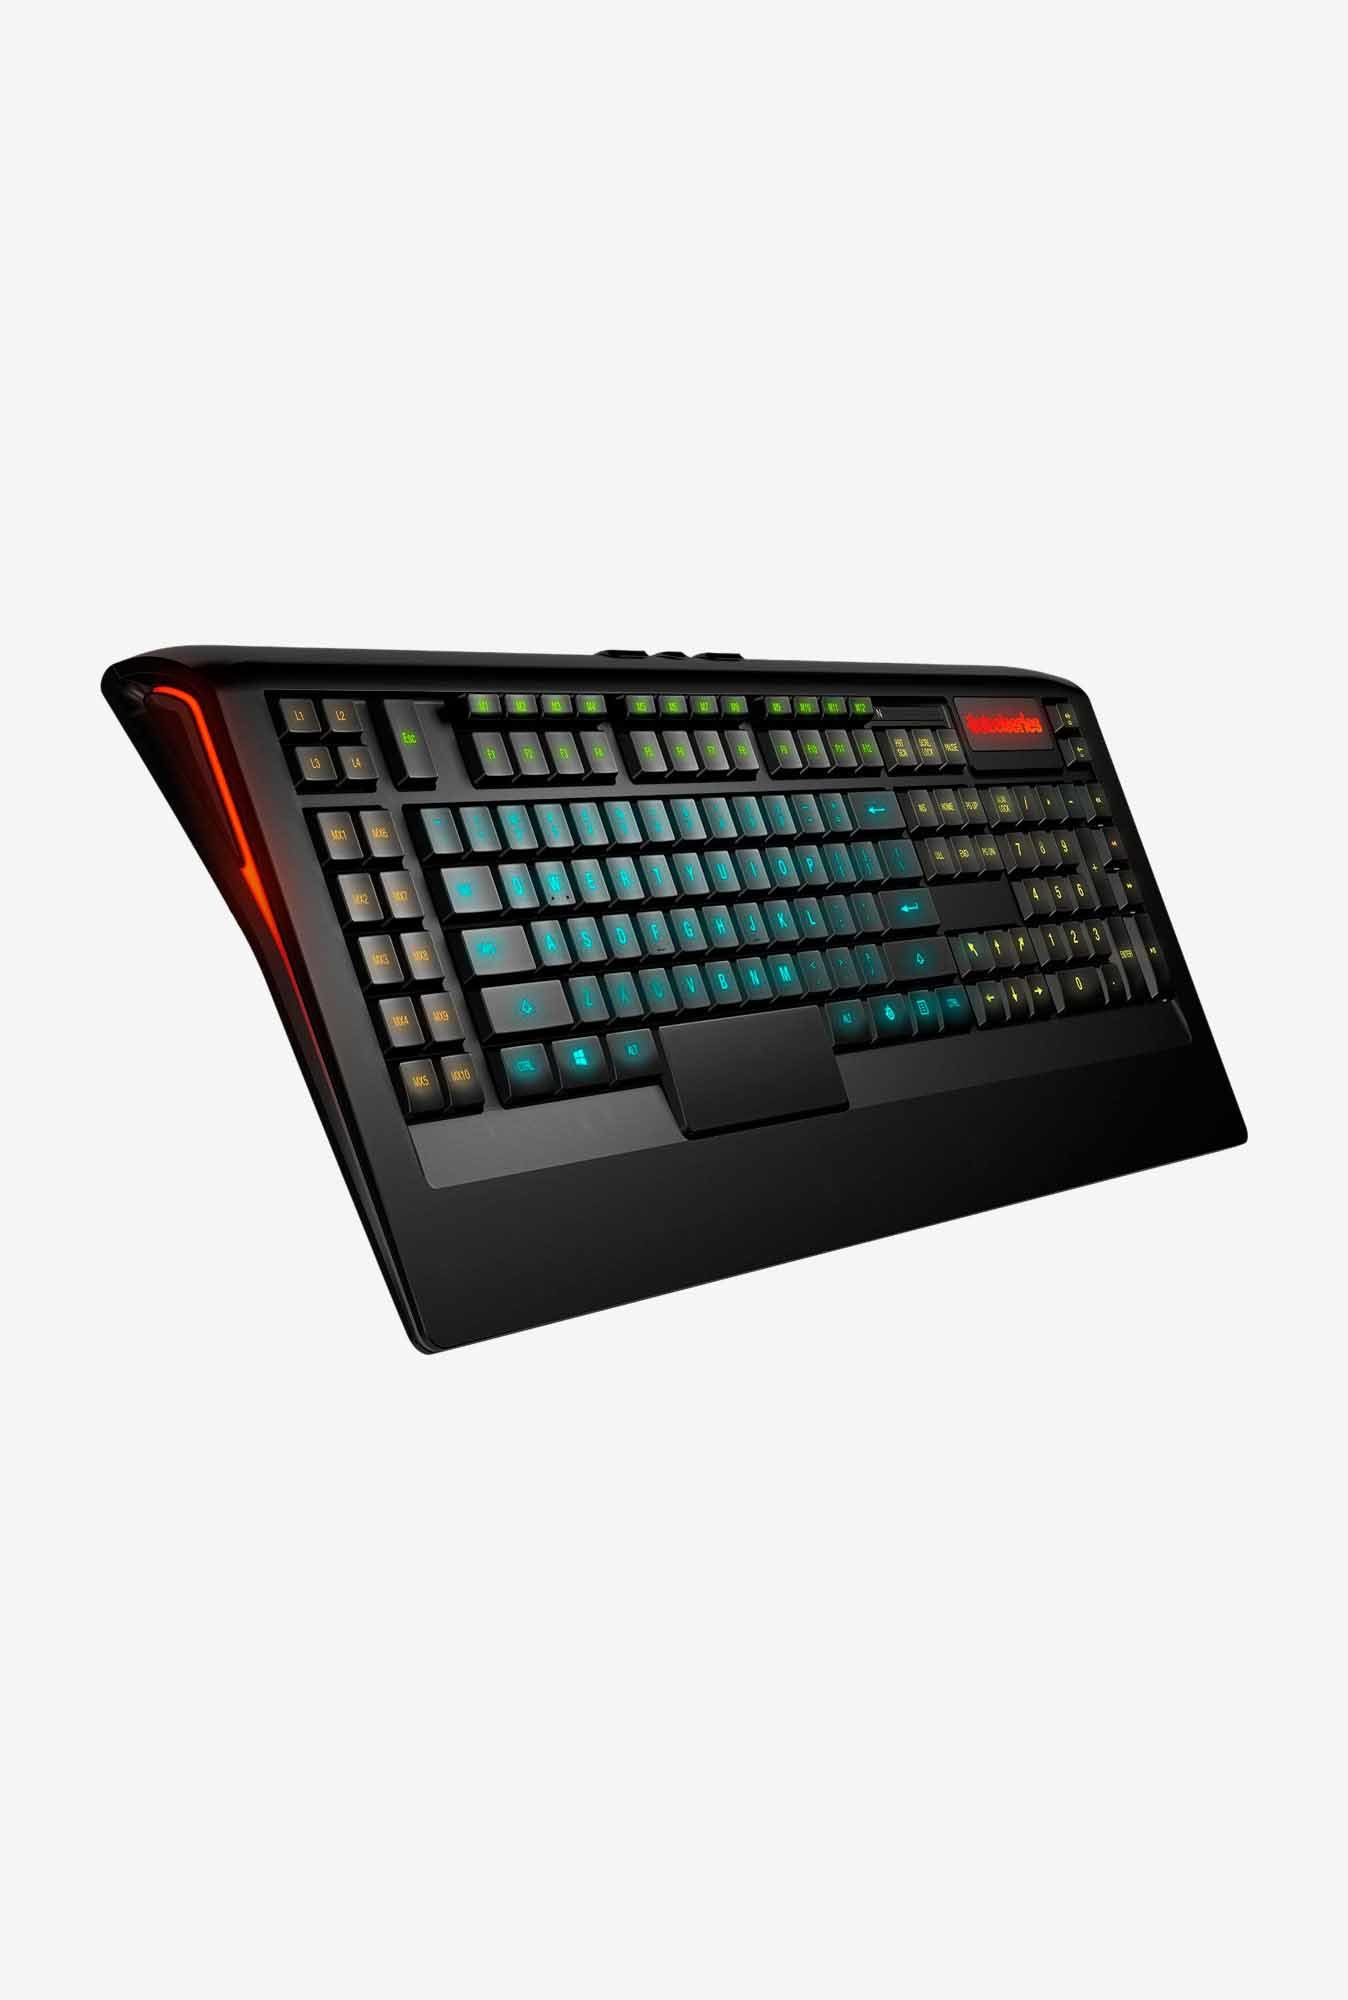 SteelSeries Apex 350 64470 Keyboard Black